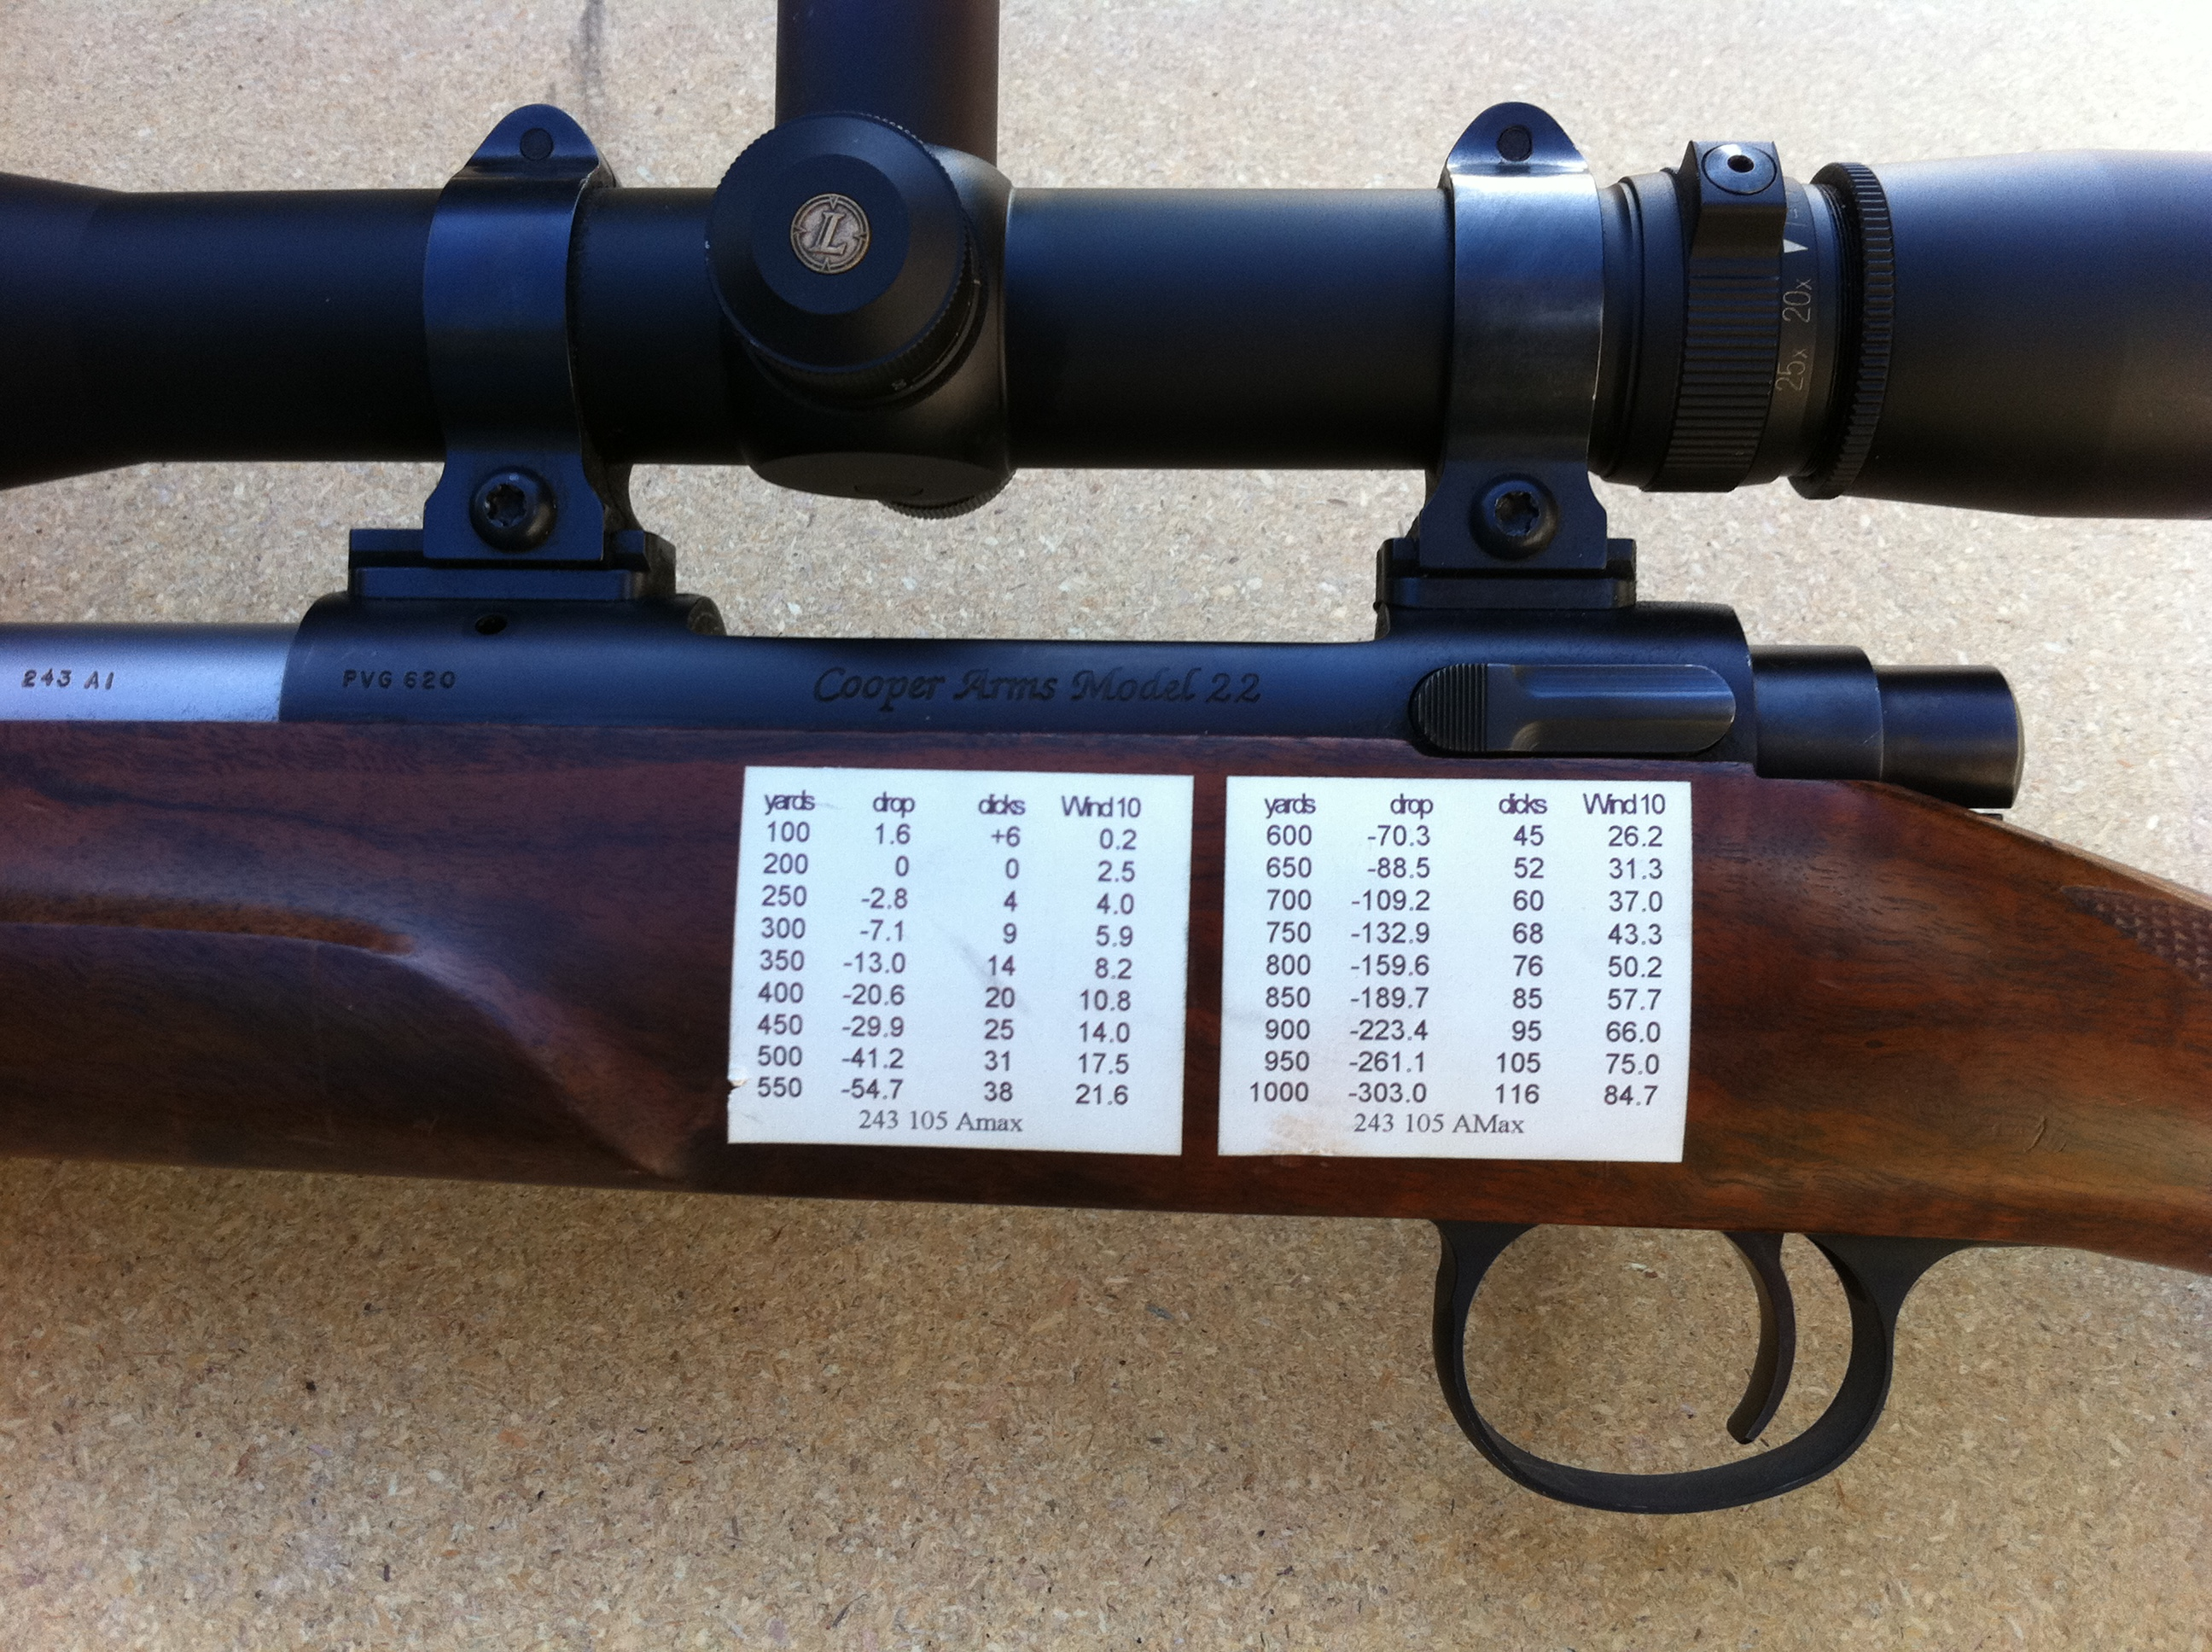 Bullet Size Chart Picture: Cooper 243 dope sheet.jpg - Wikimedia Commons,Chart